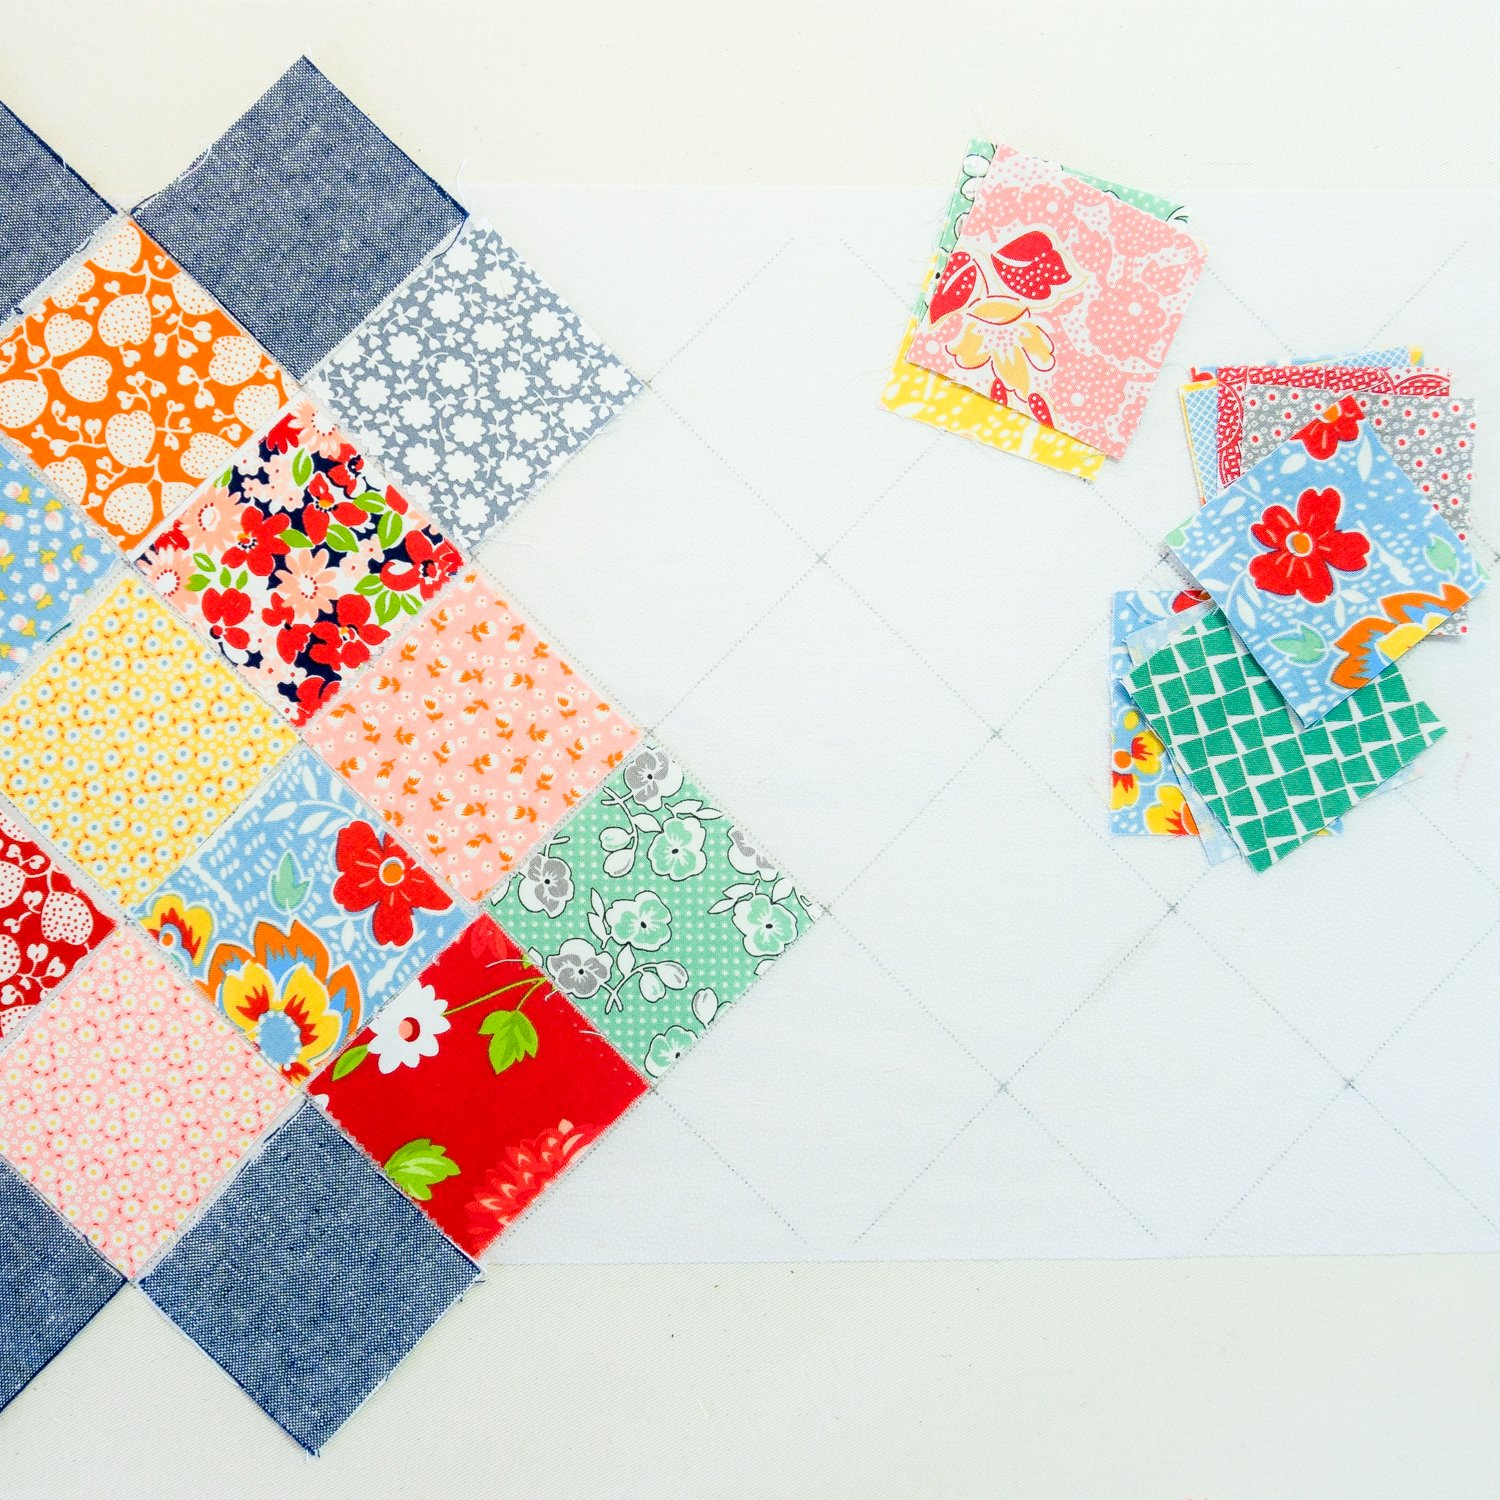 Easy Piecing Grid - 5 Panels - 1.5 Inch On-Point Border